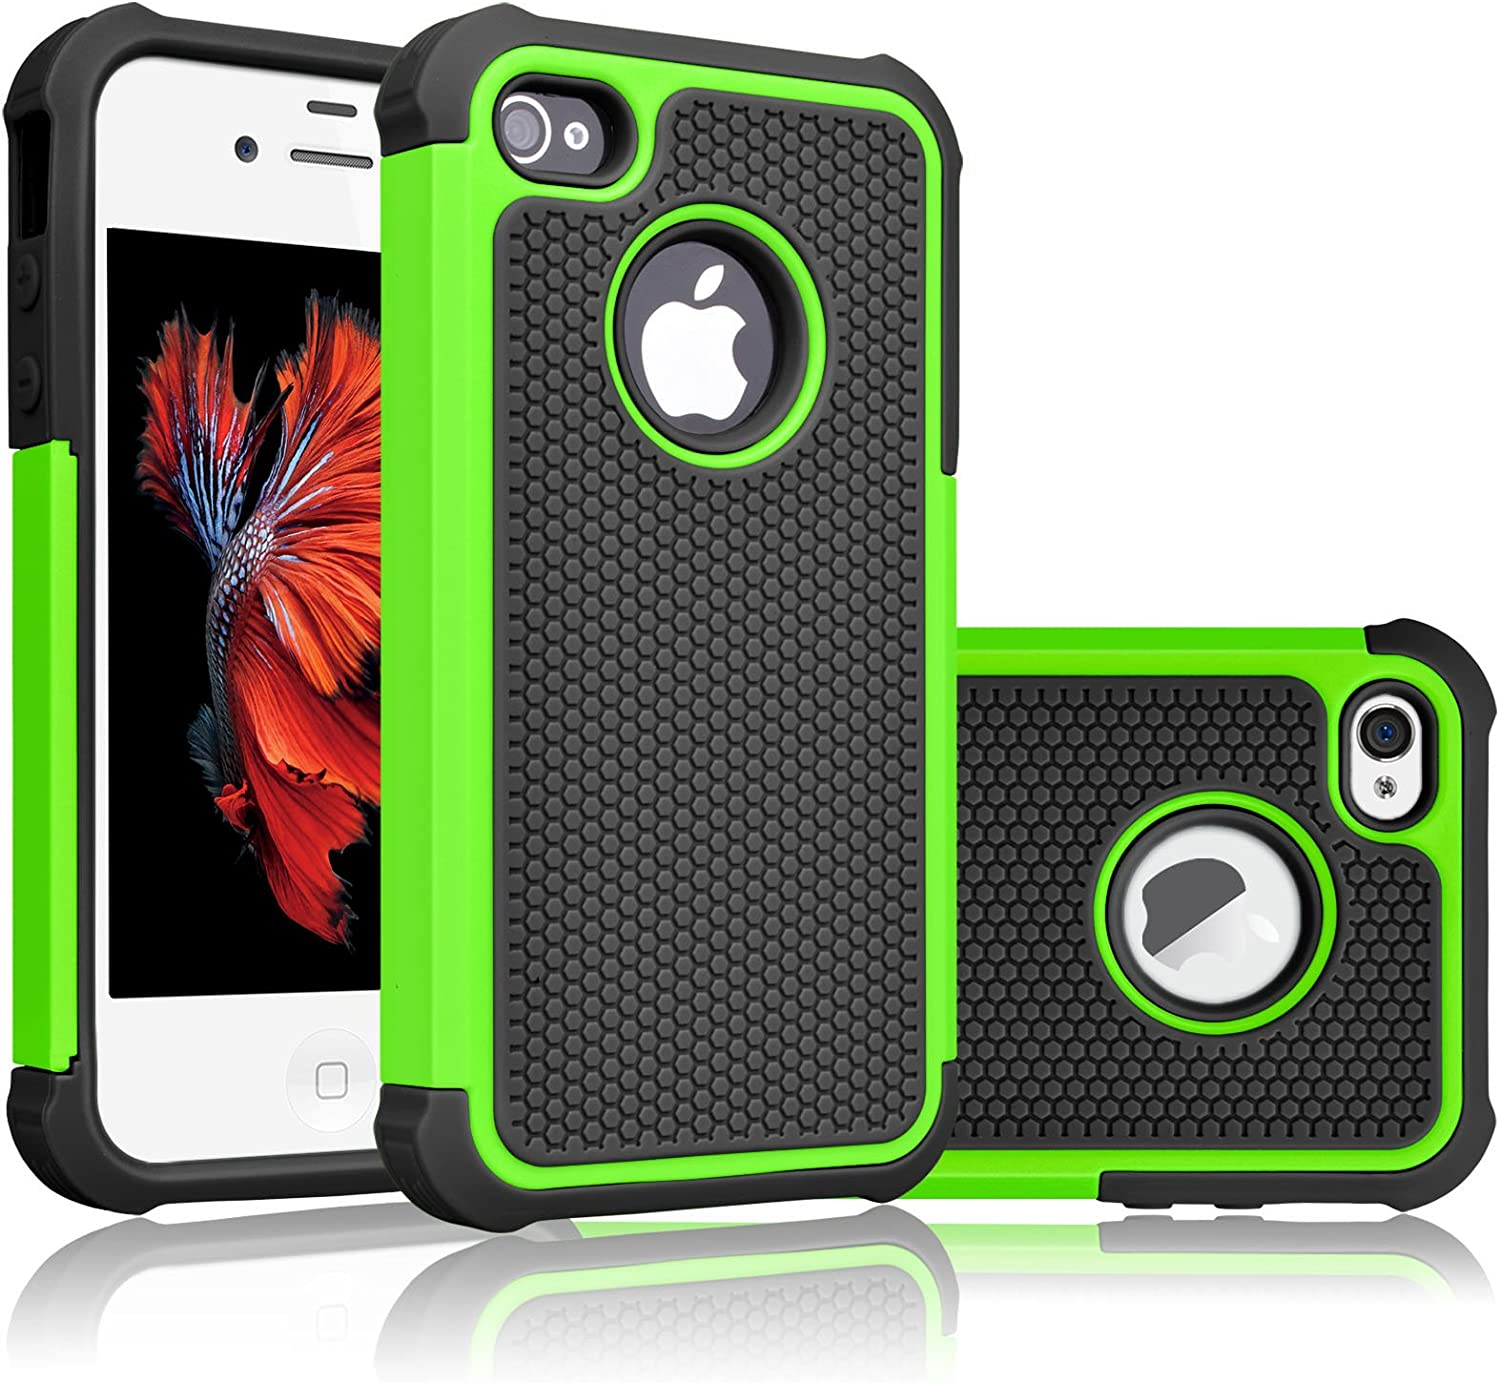 Tekcoo Compatible for iPhone 4S Case/iPhone 4 / 4G Cover, [Tmajor] Shock Absorbing Hybrid Best Impact Defender Rugged Slim Grip Bumper Cover Shell Plastic Outer & Rubber Silicone Inner [Green/Black]